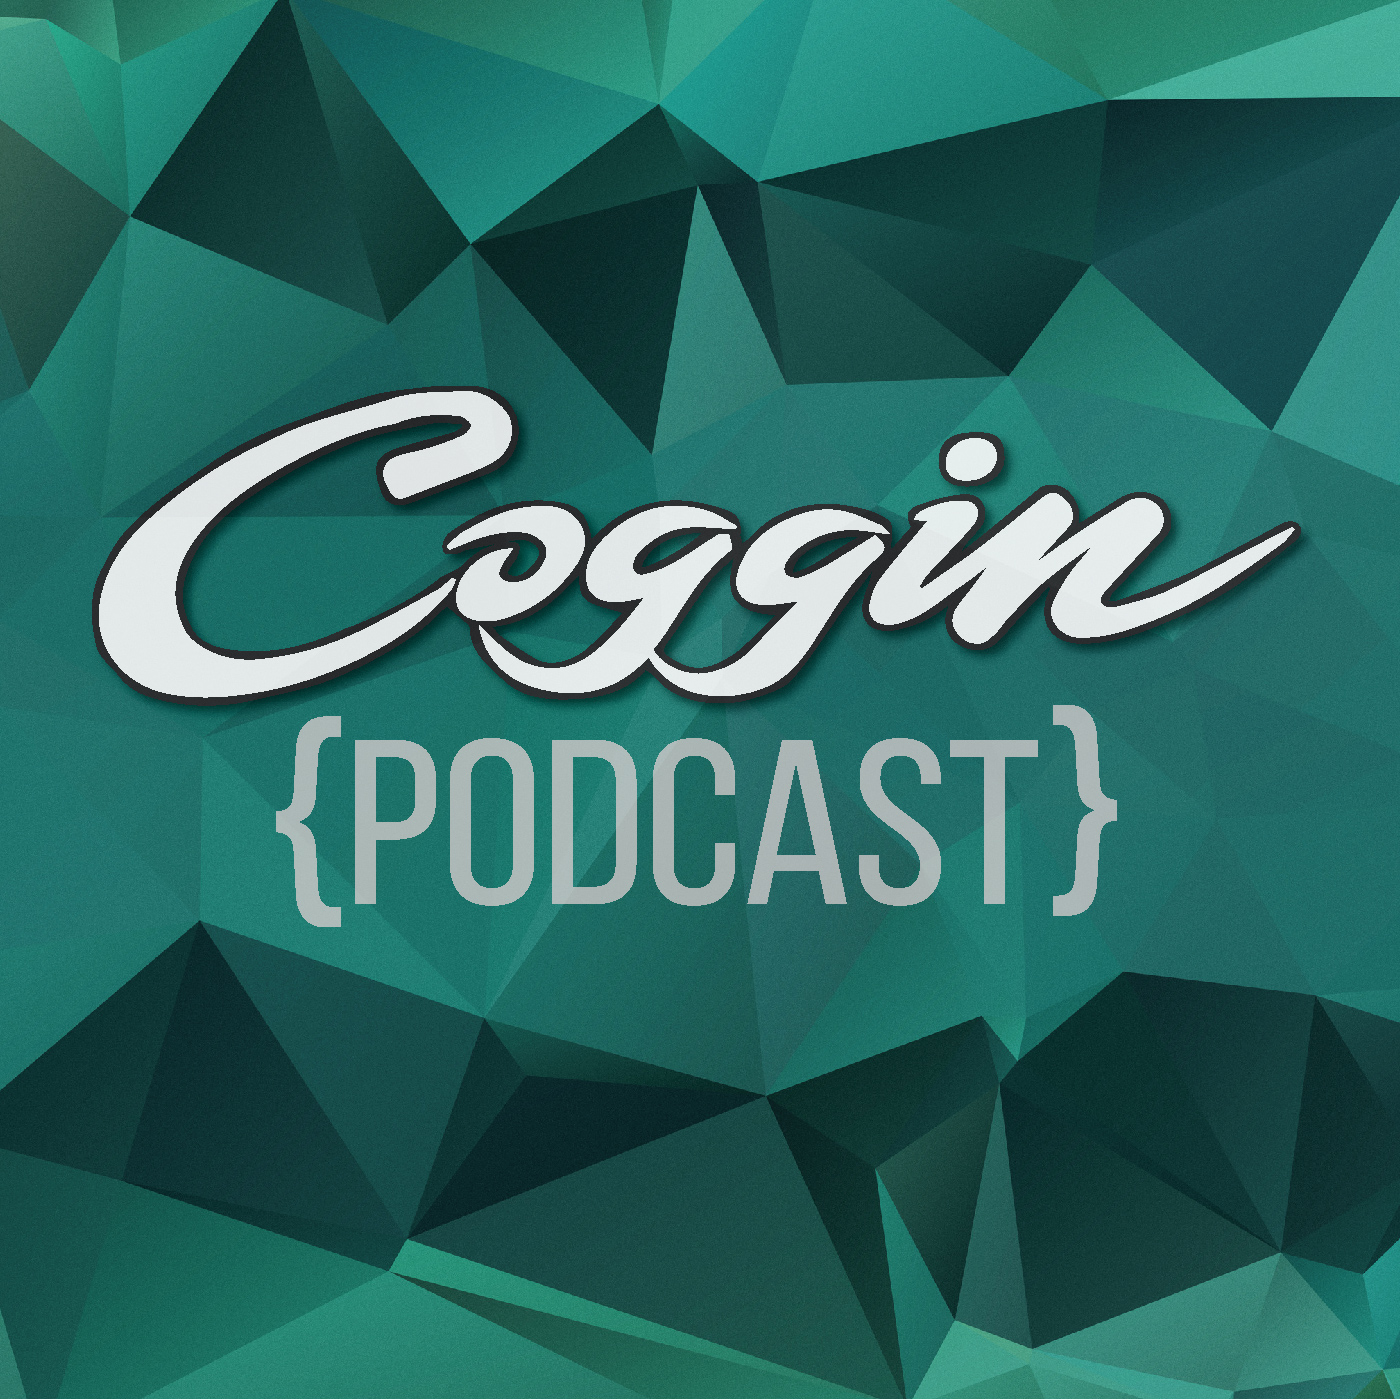 Podcasts - Coggin Church